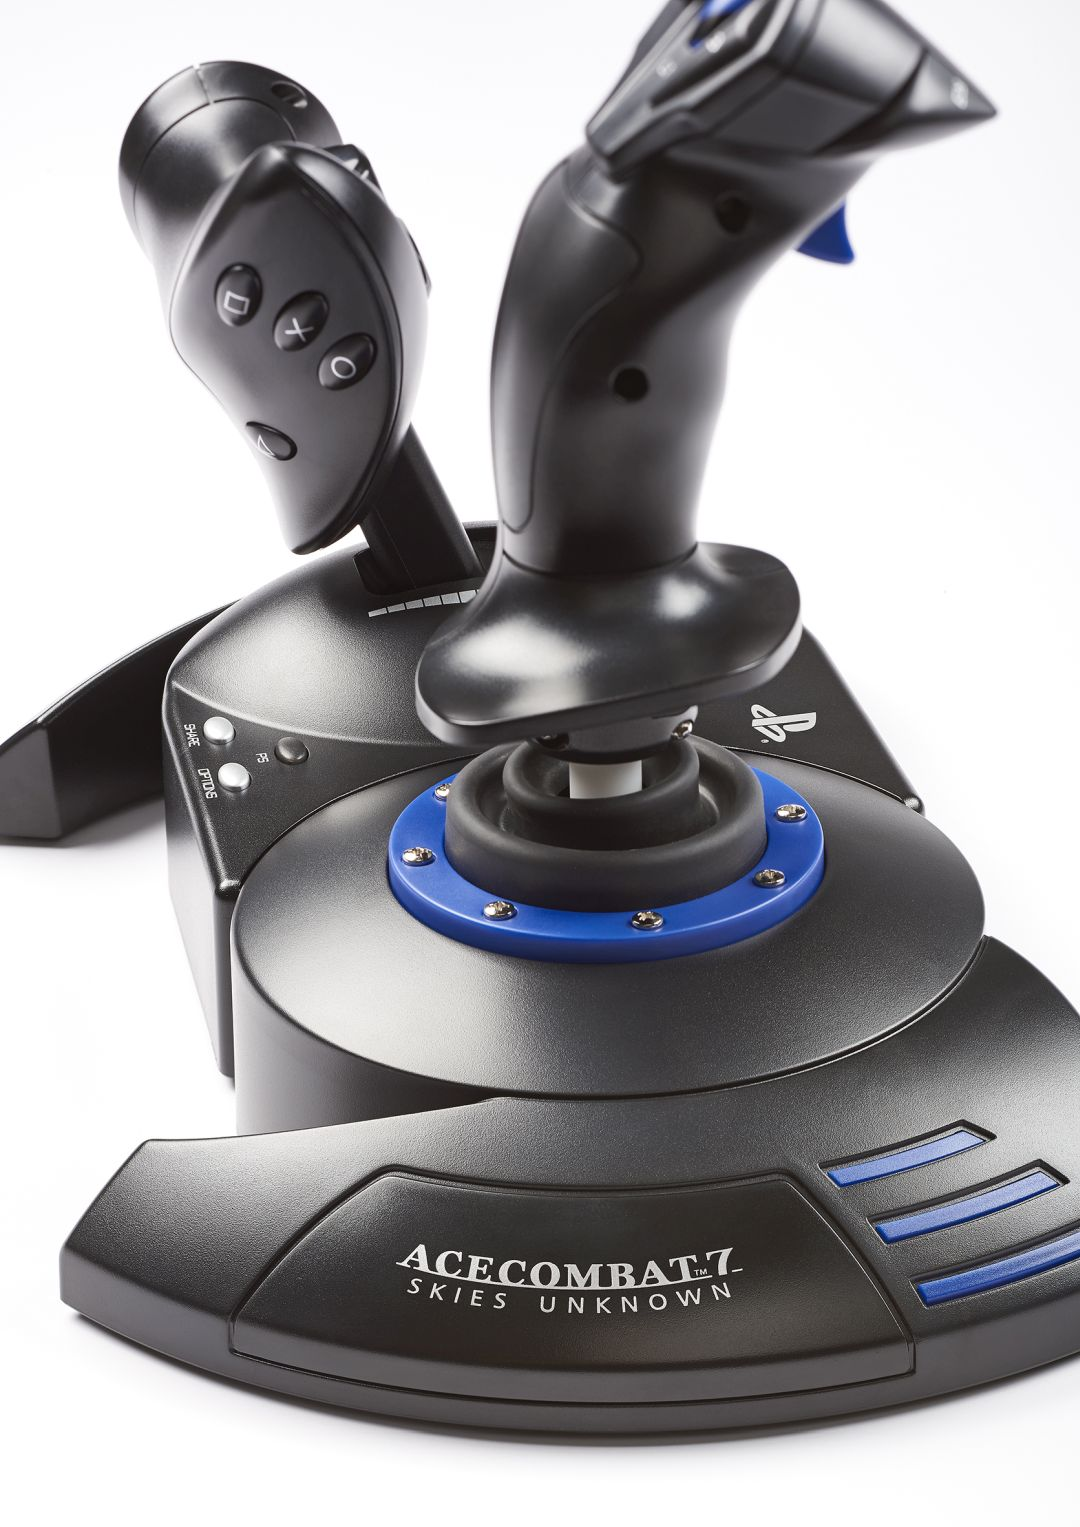 Thrustmaster T Flight Hotas 4 Ace Combat 7 Skies Unknown Edition Review Ps4 Playstation Universe